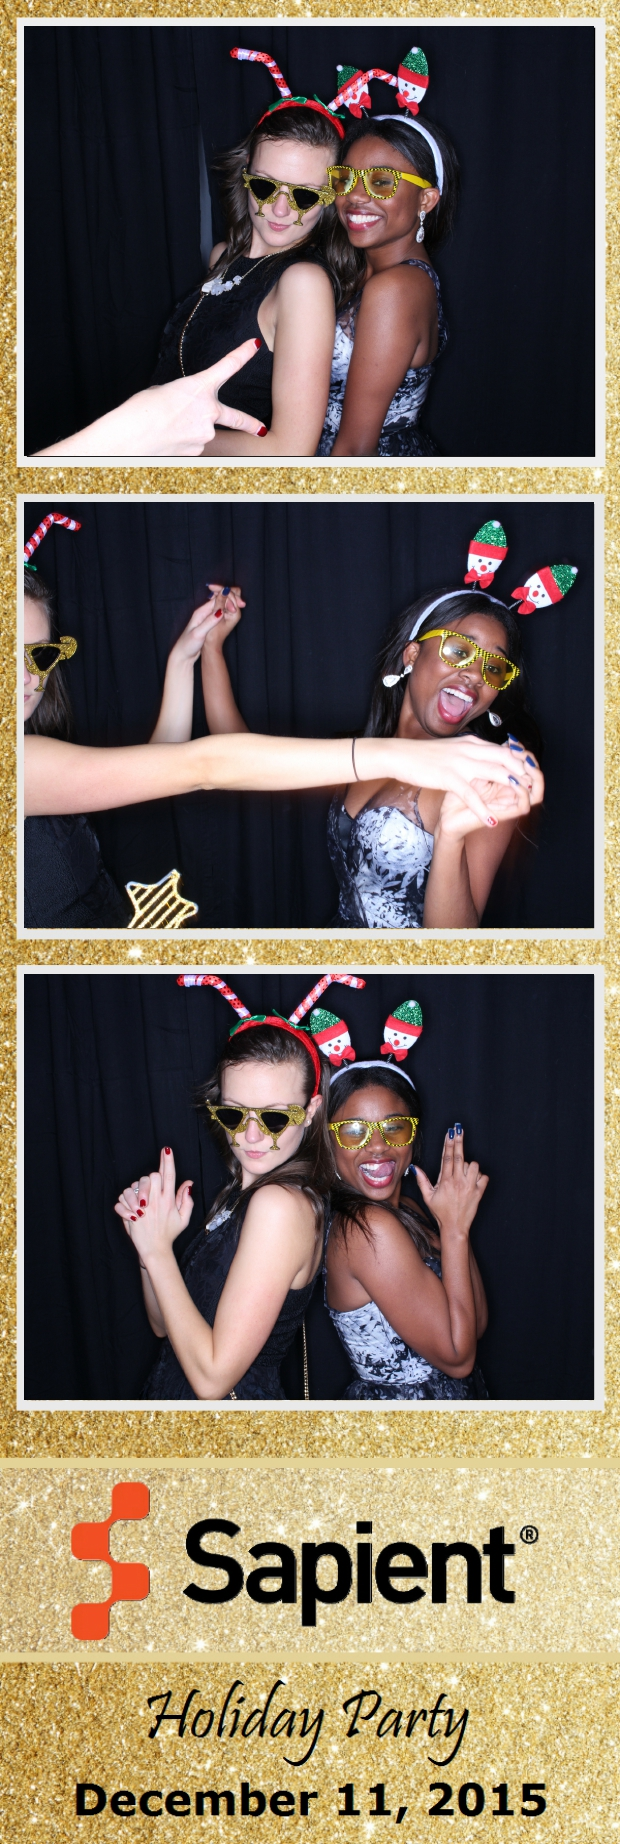 Guest House Events Photo Booth Sapient Holiday Party (105).jpg